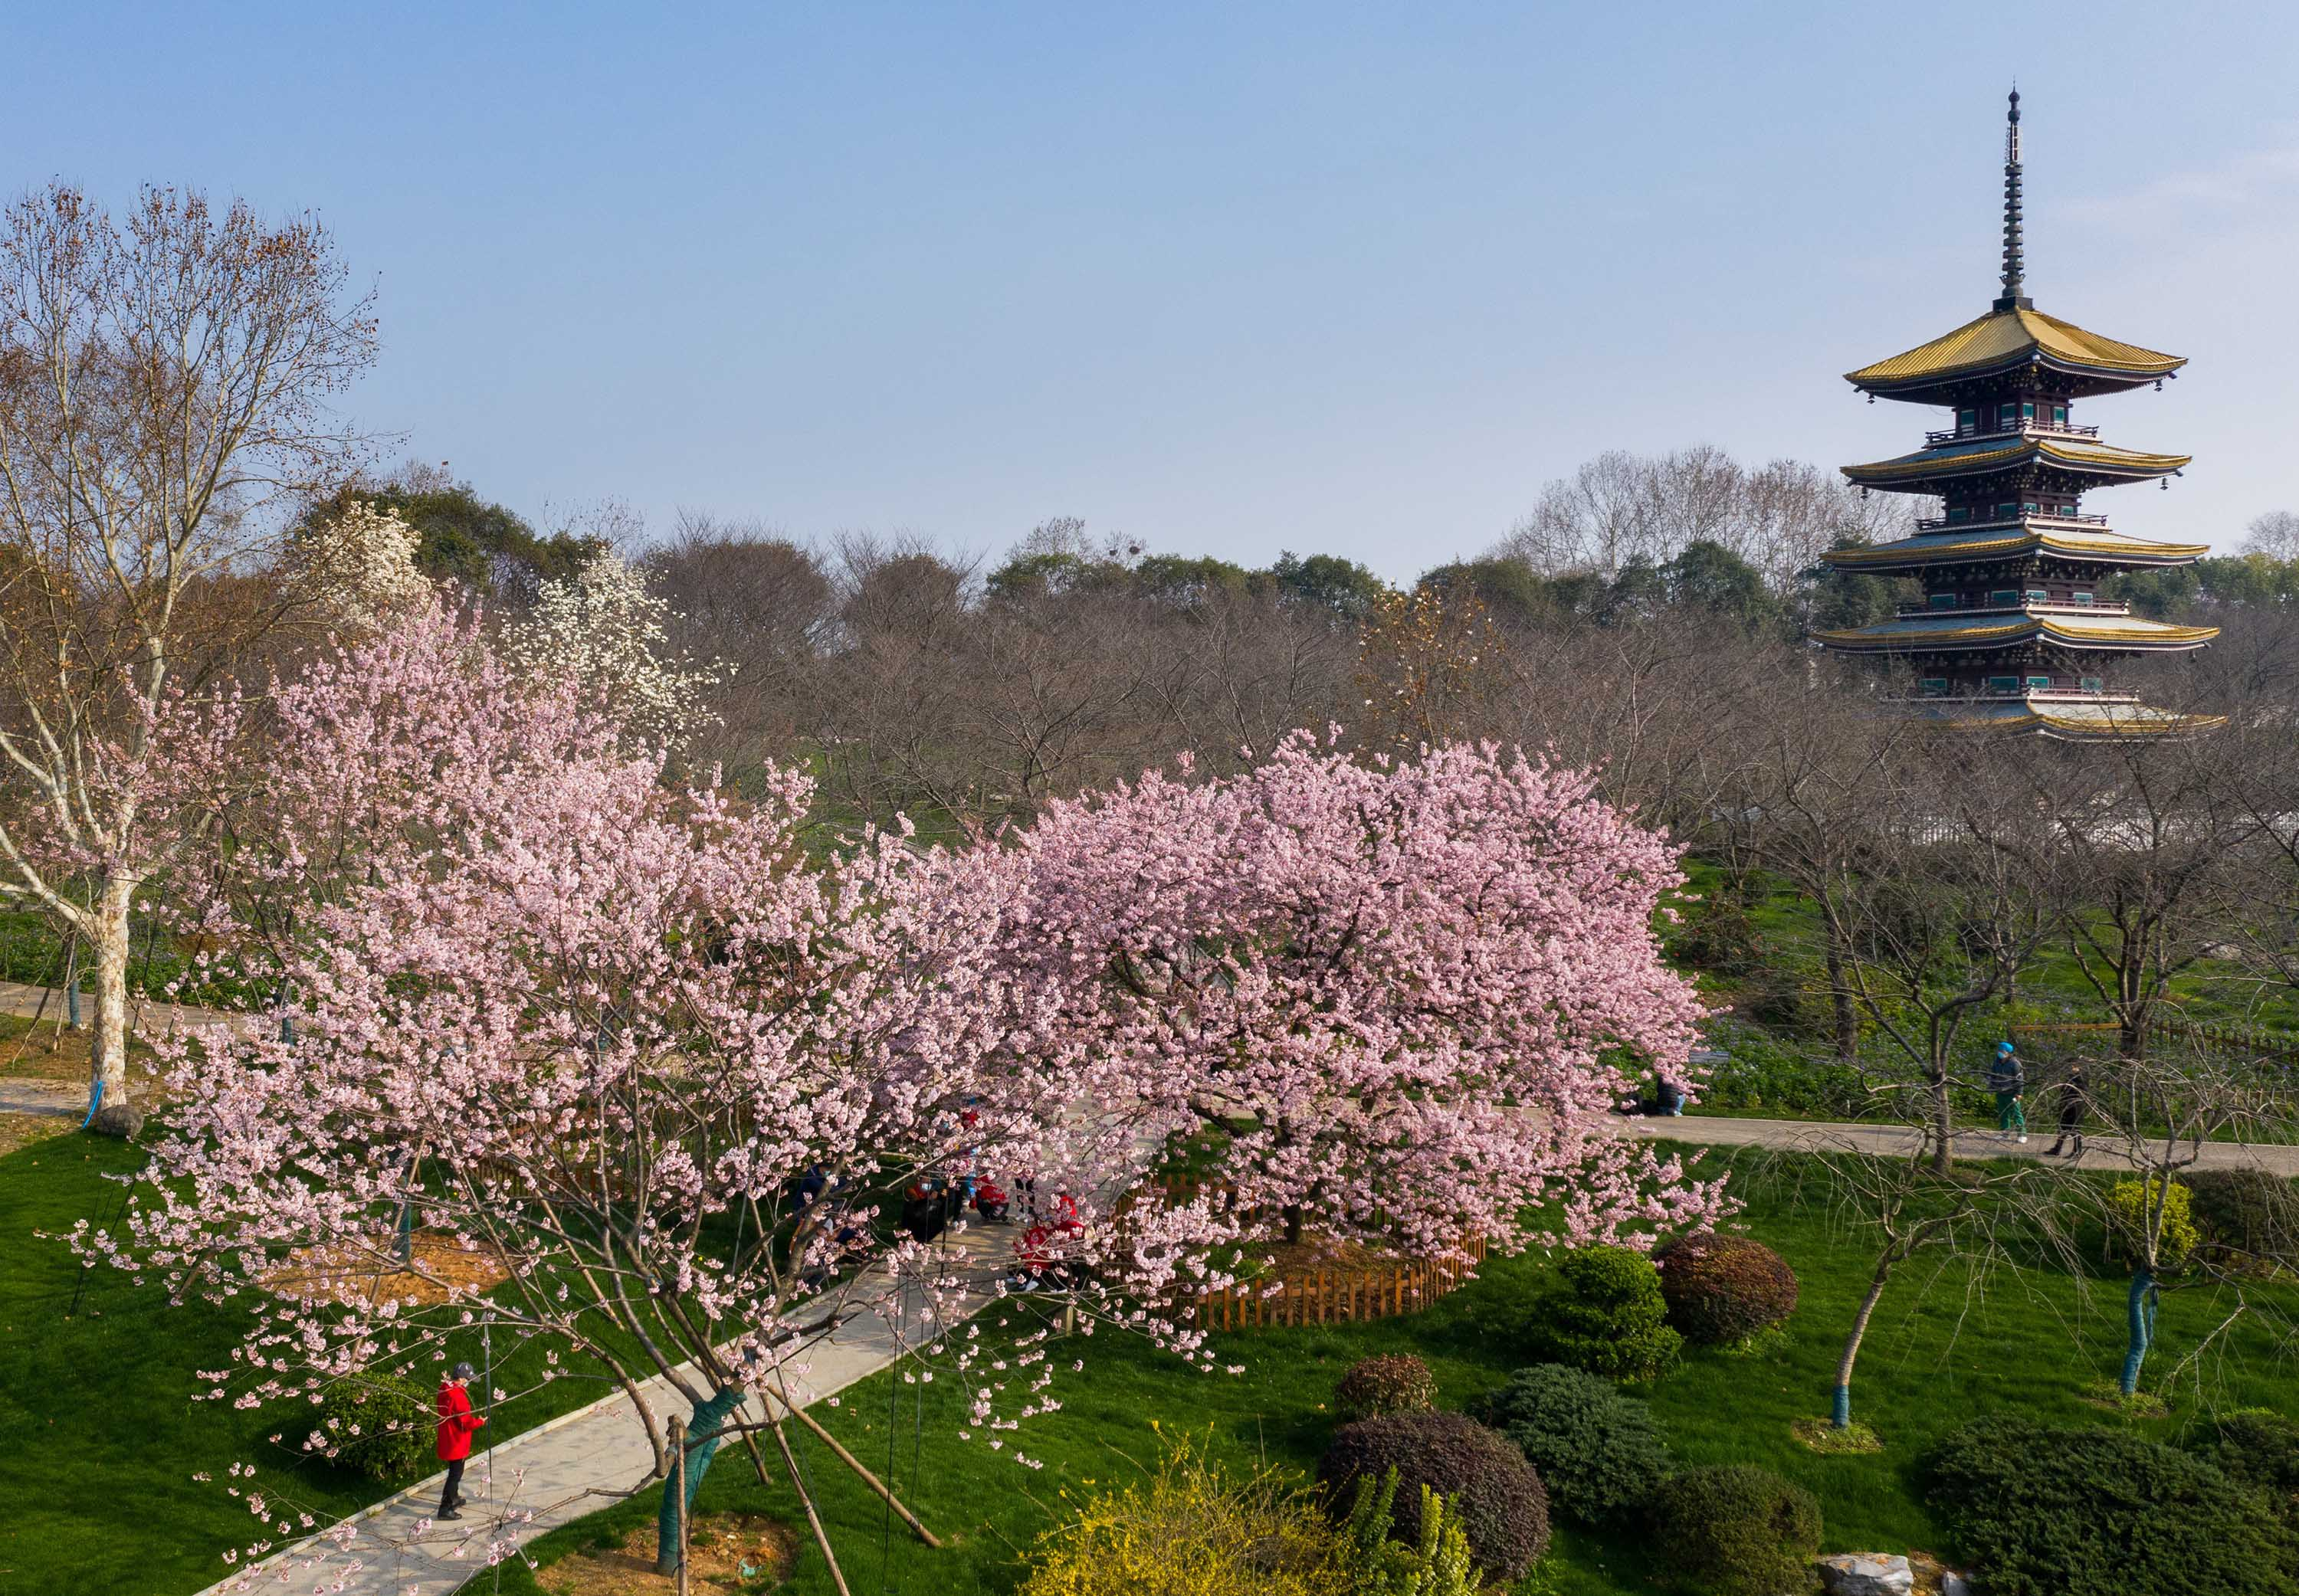 A group of medical staff workers take photos amid cherry blossoms at Moshan cherry garden in Wuhan on March 5.